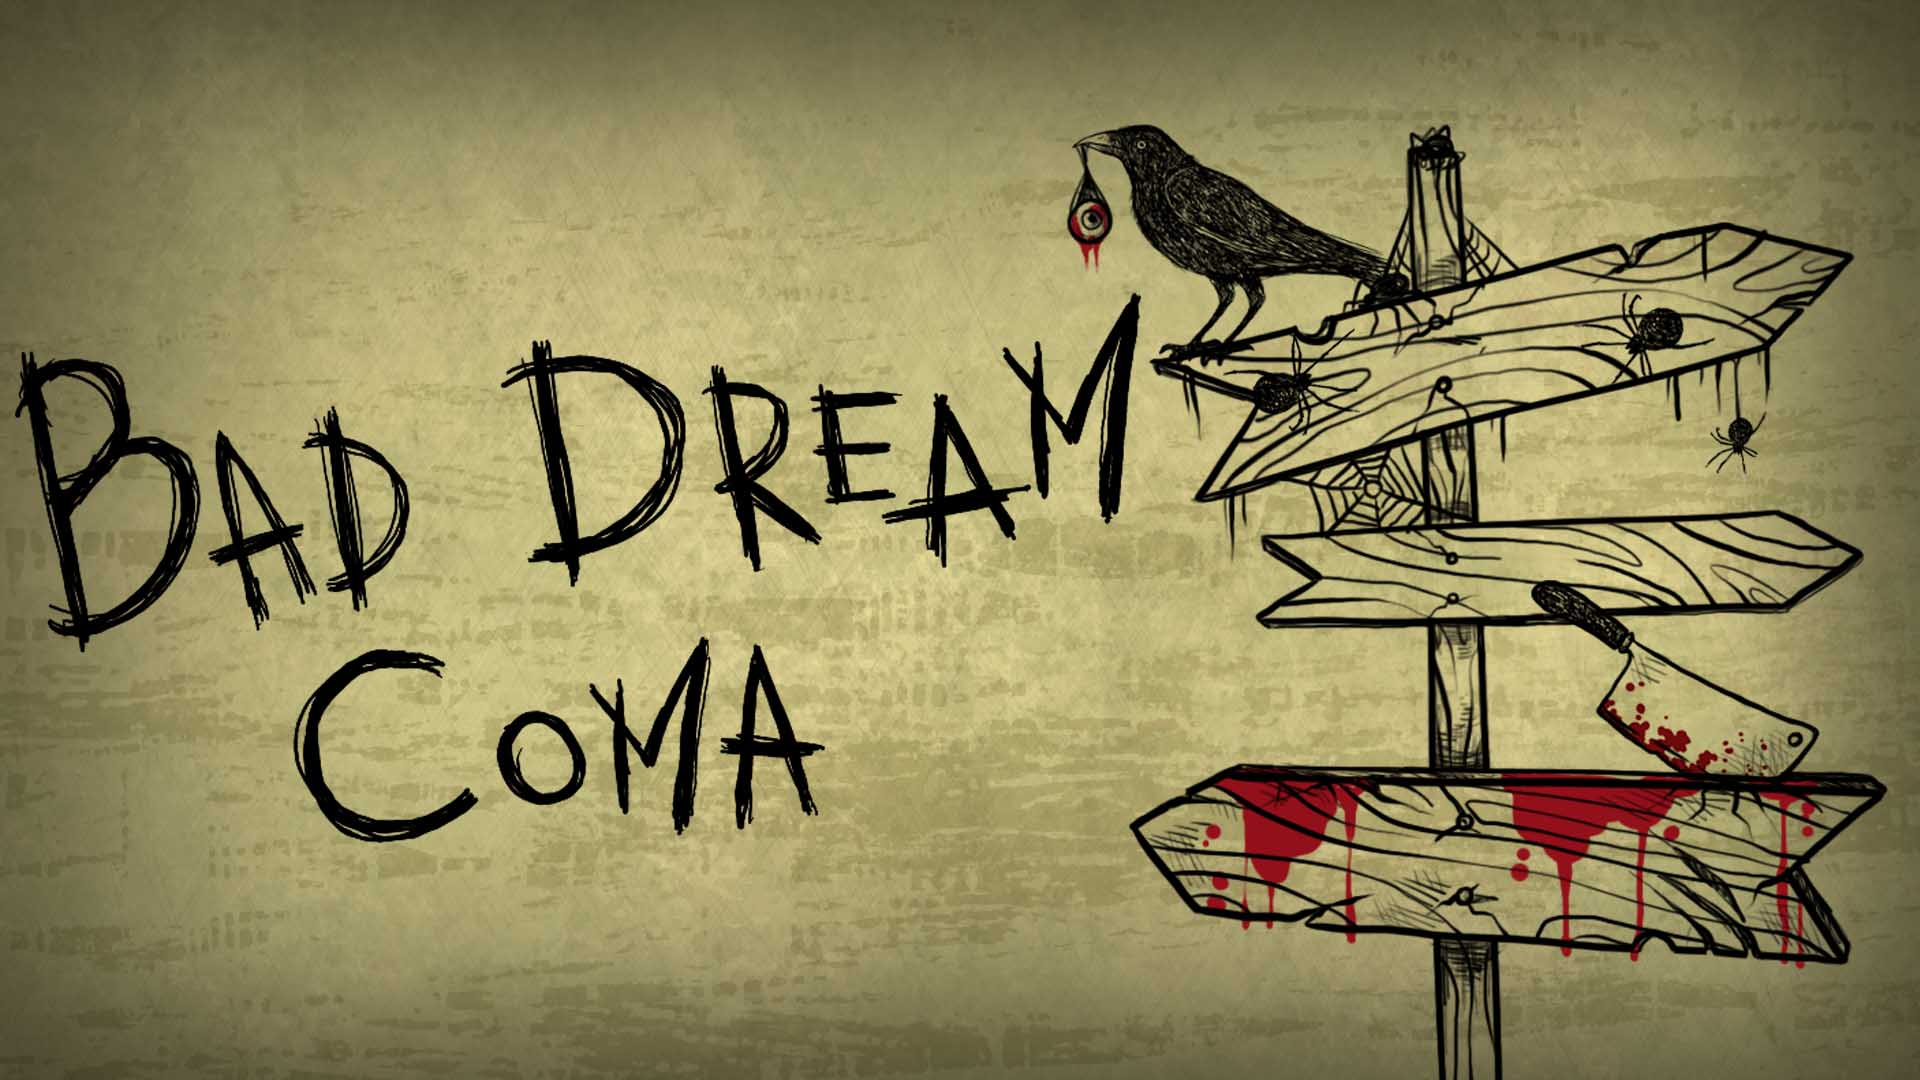 Bad Dream: Coma